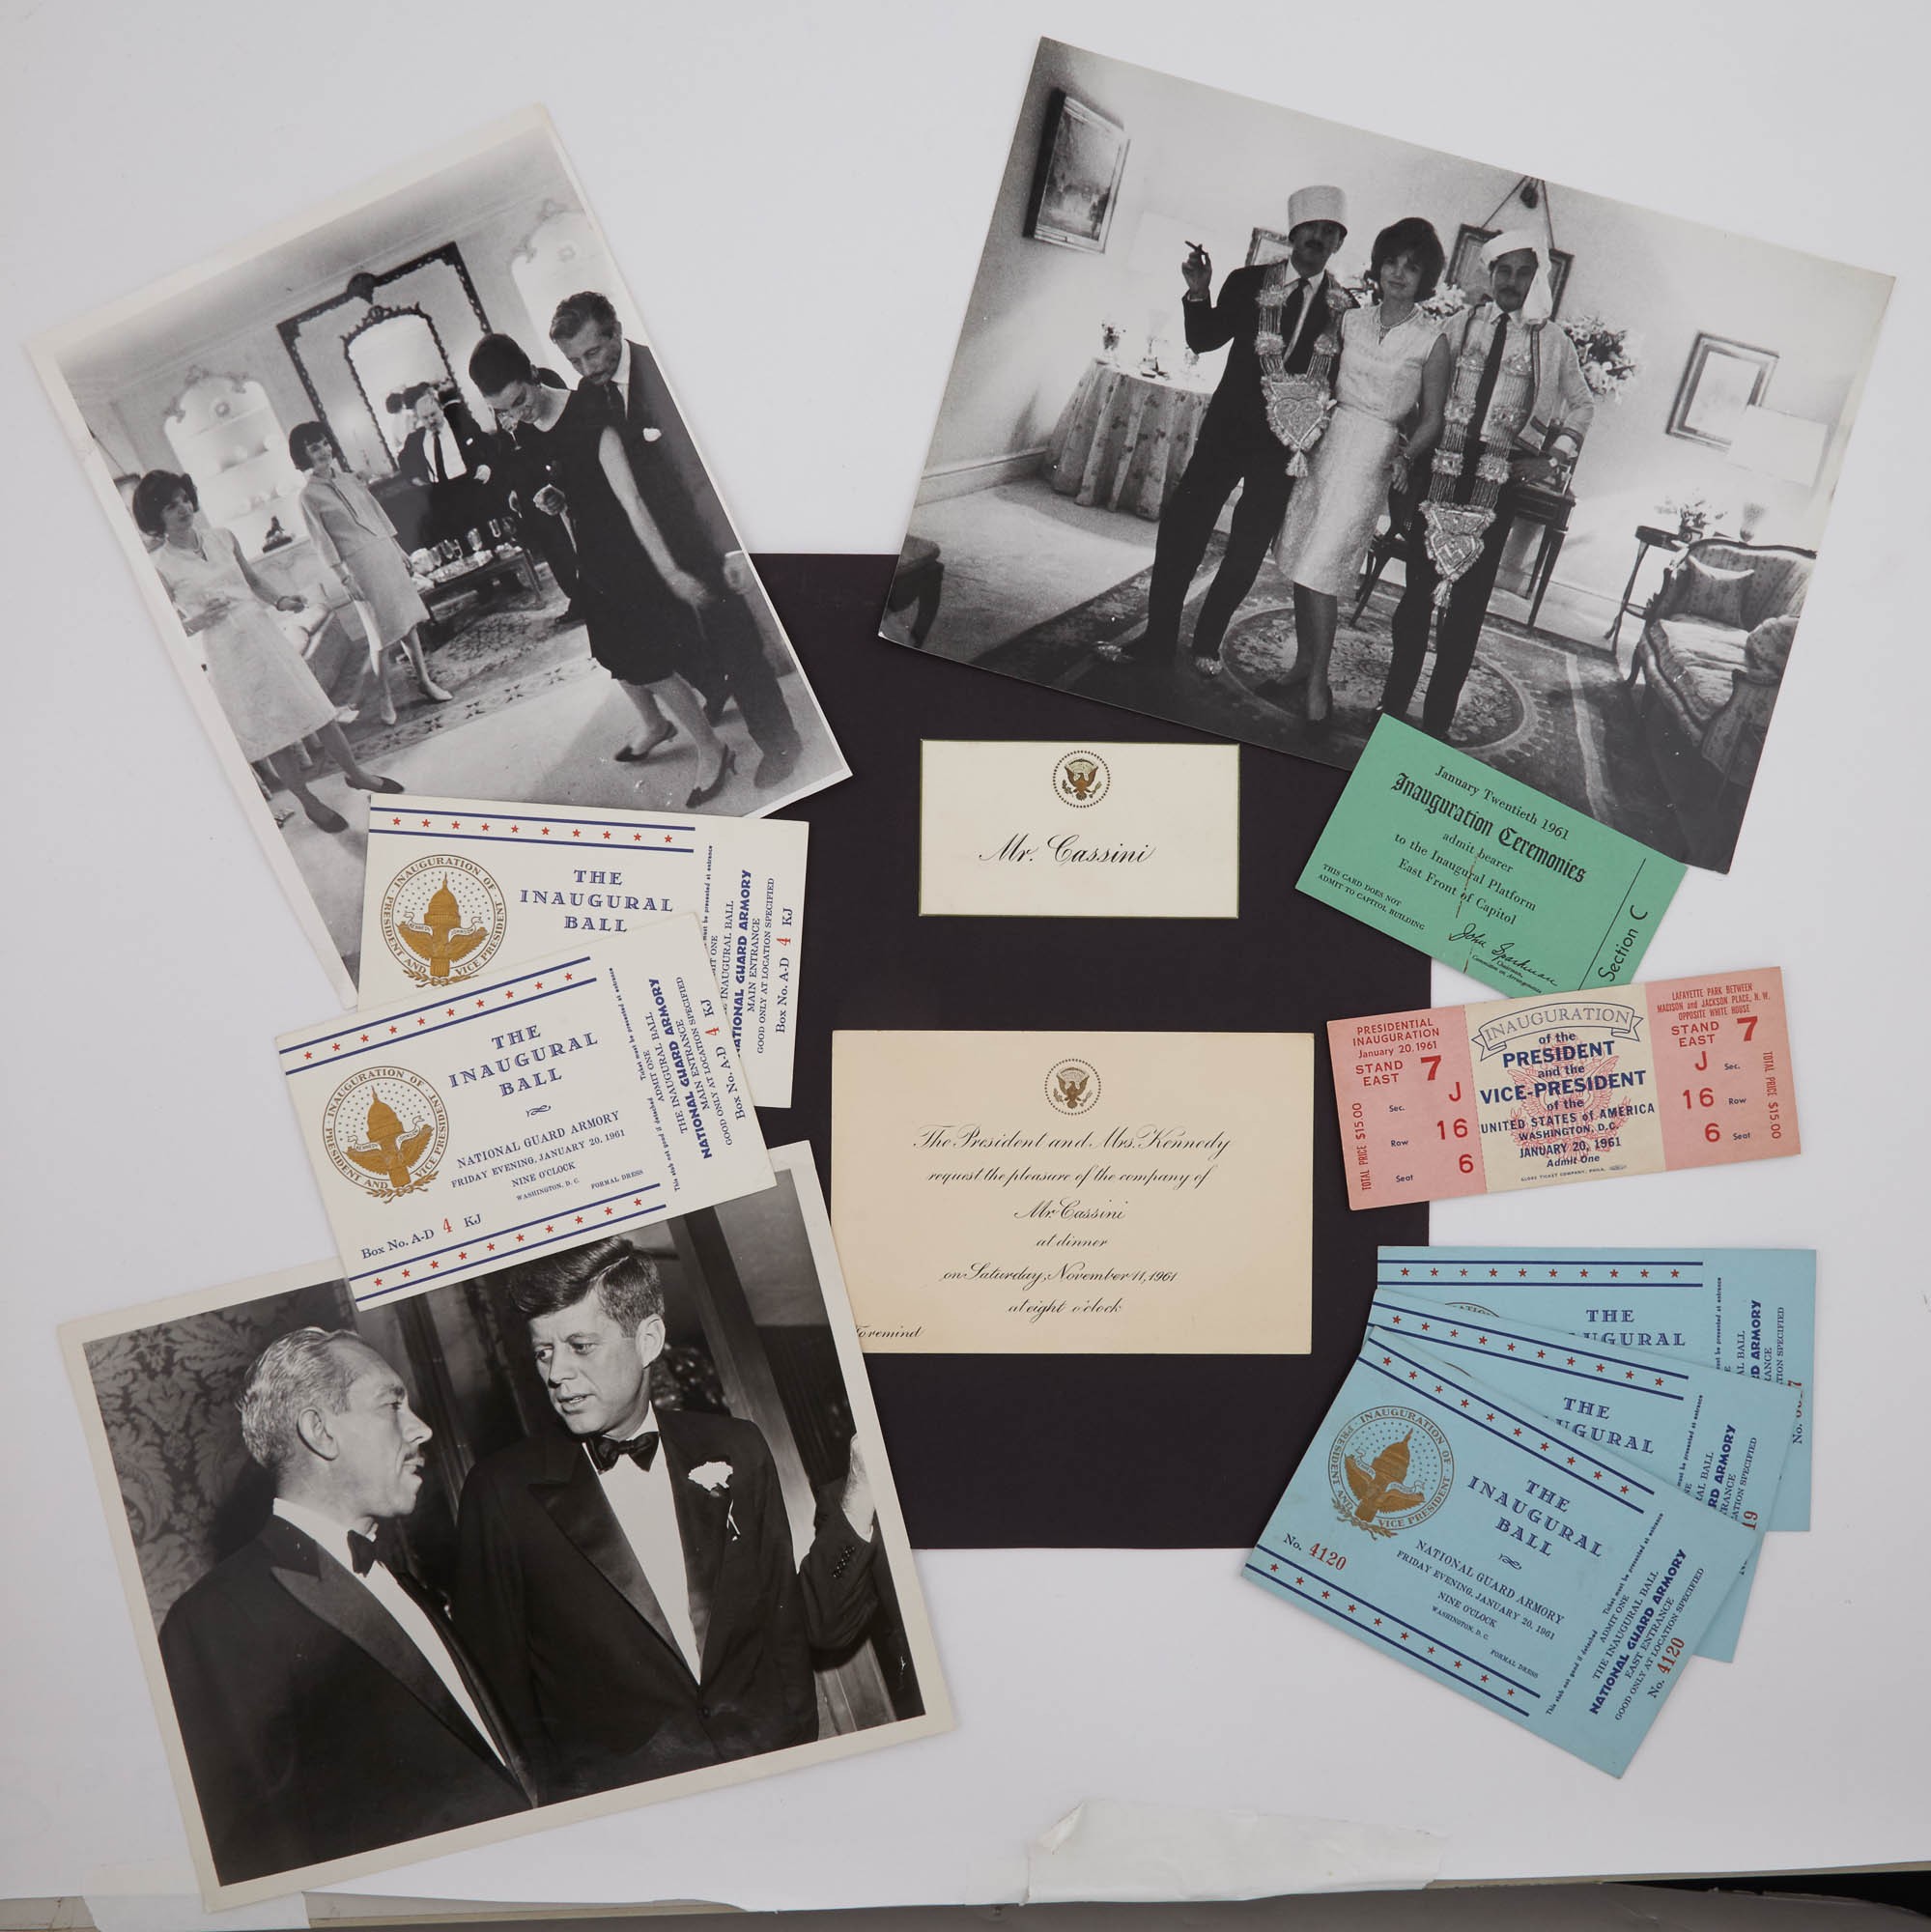 Lot image - [KENNEDYS-INAUGURATION]  Miscellaneous photographs and ephemera relating to the Kennedys.